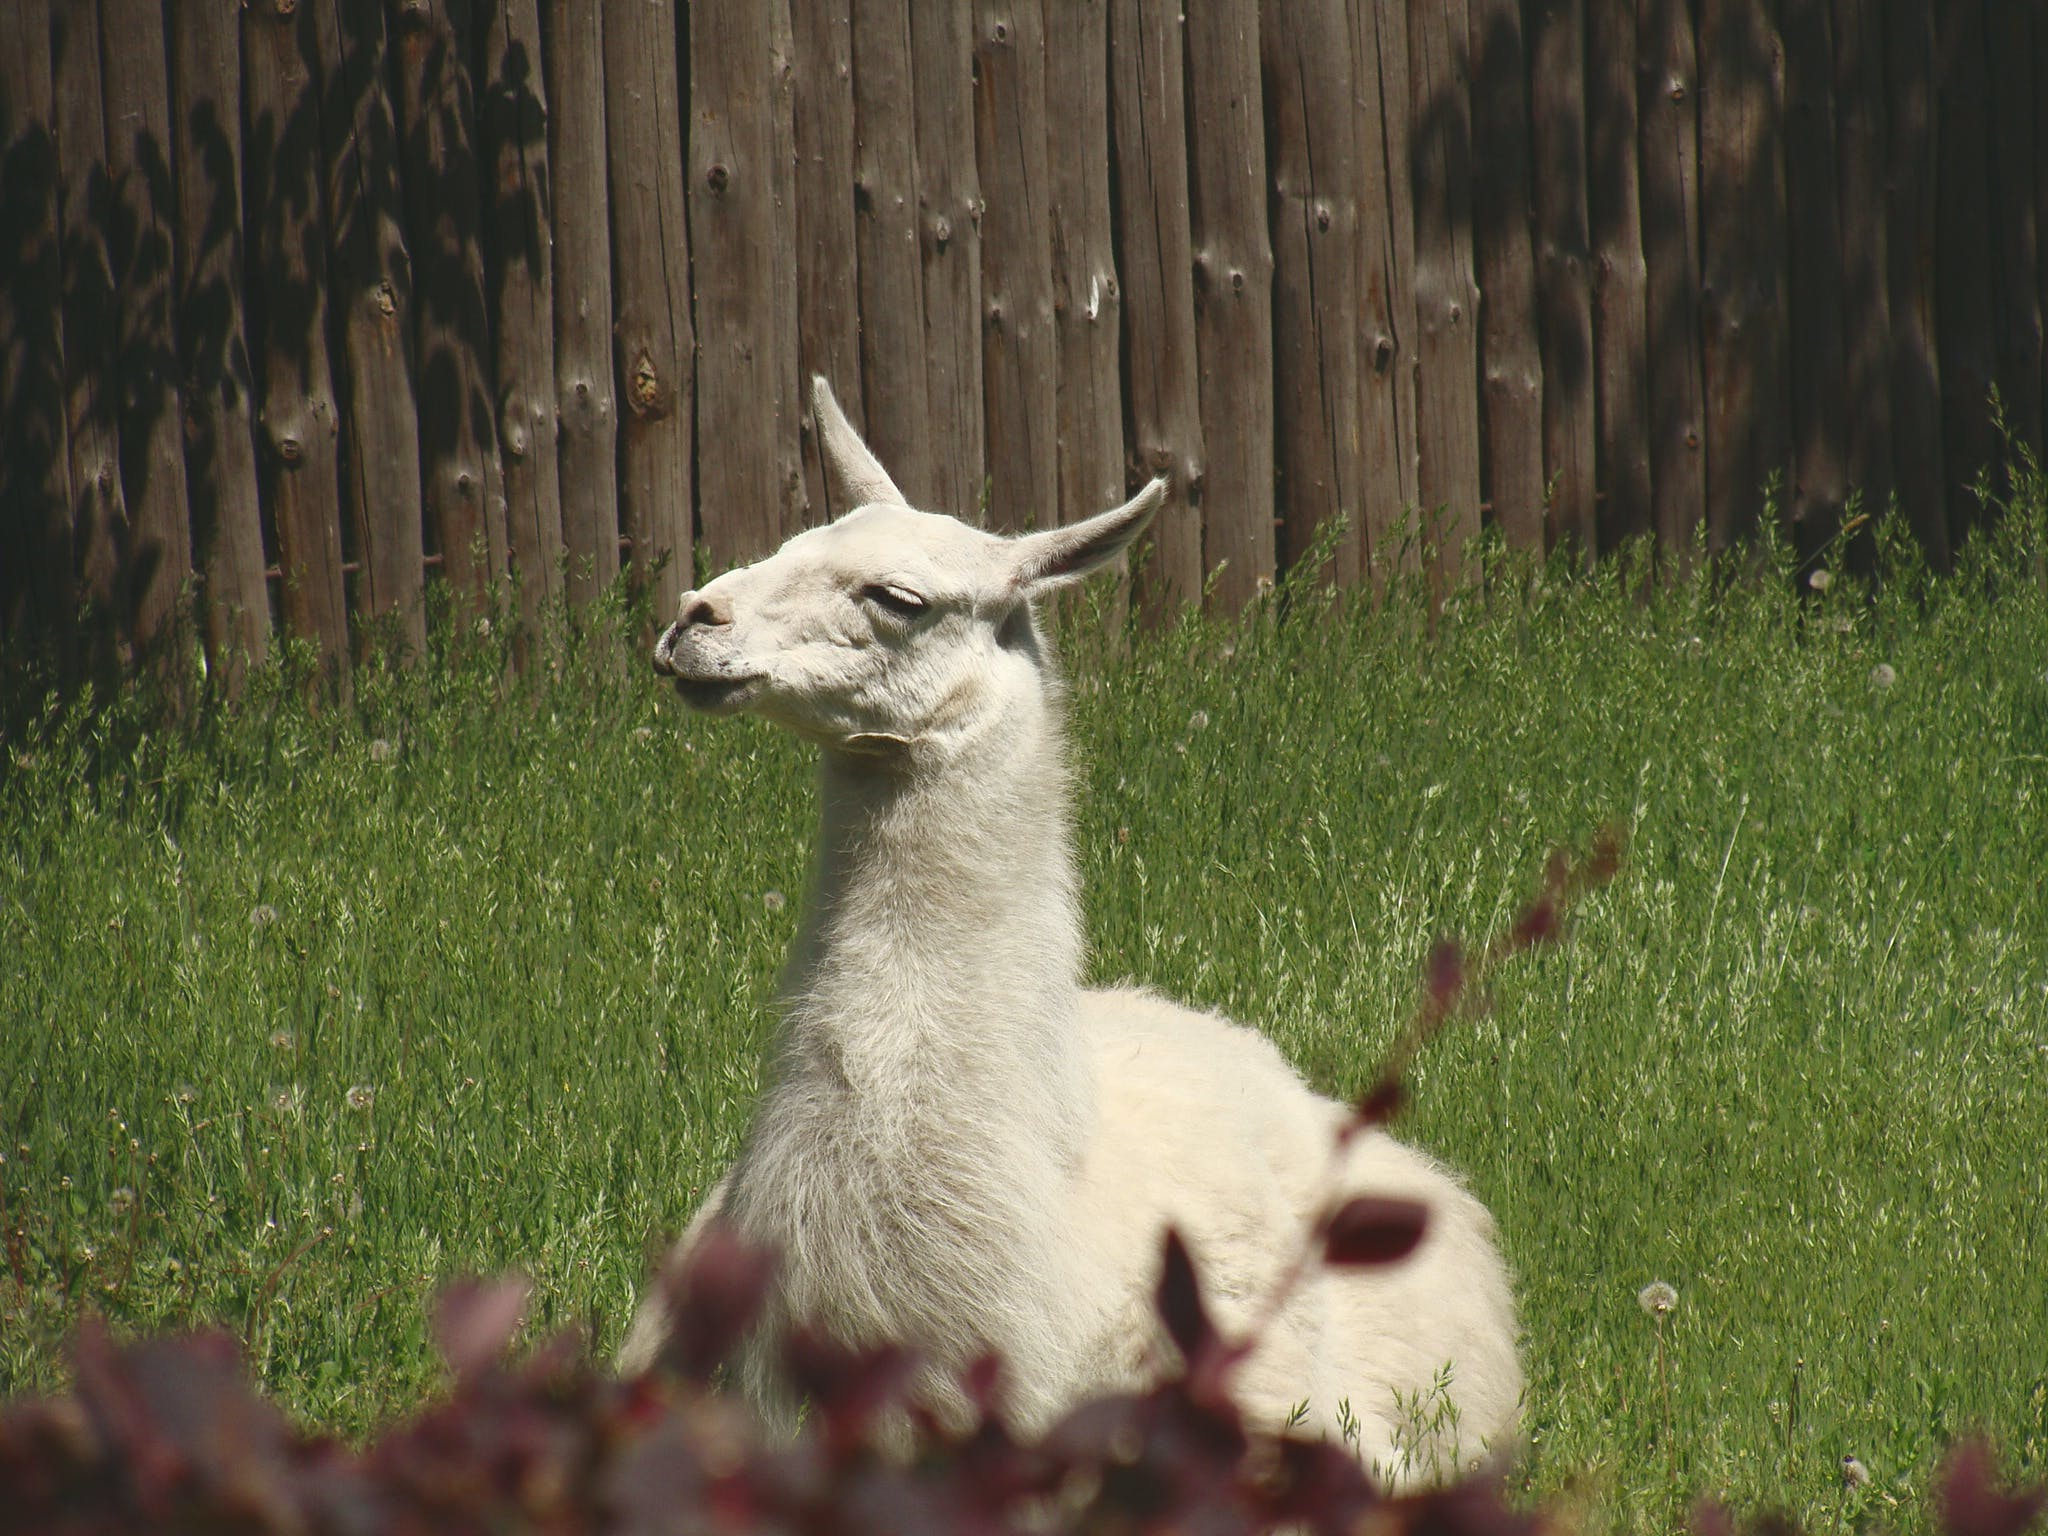 White Llama Lying on Green Grass Under Sunny Sky during Daytime